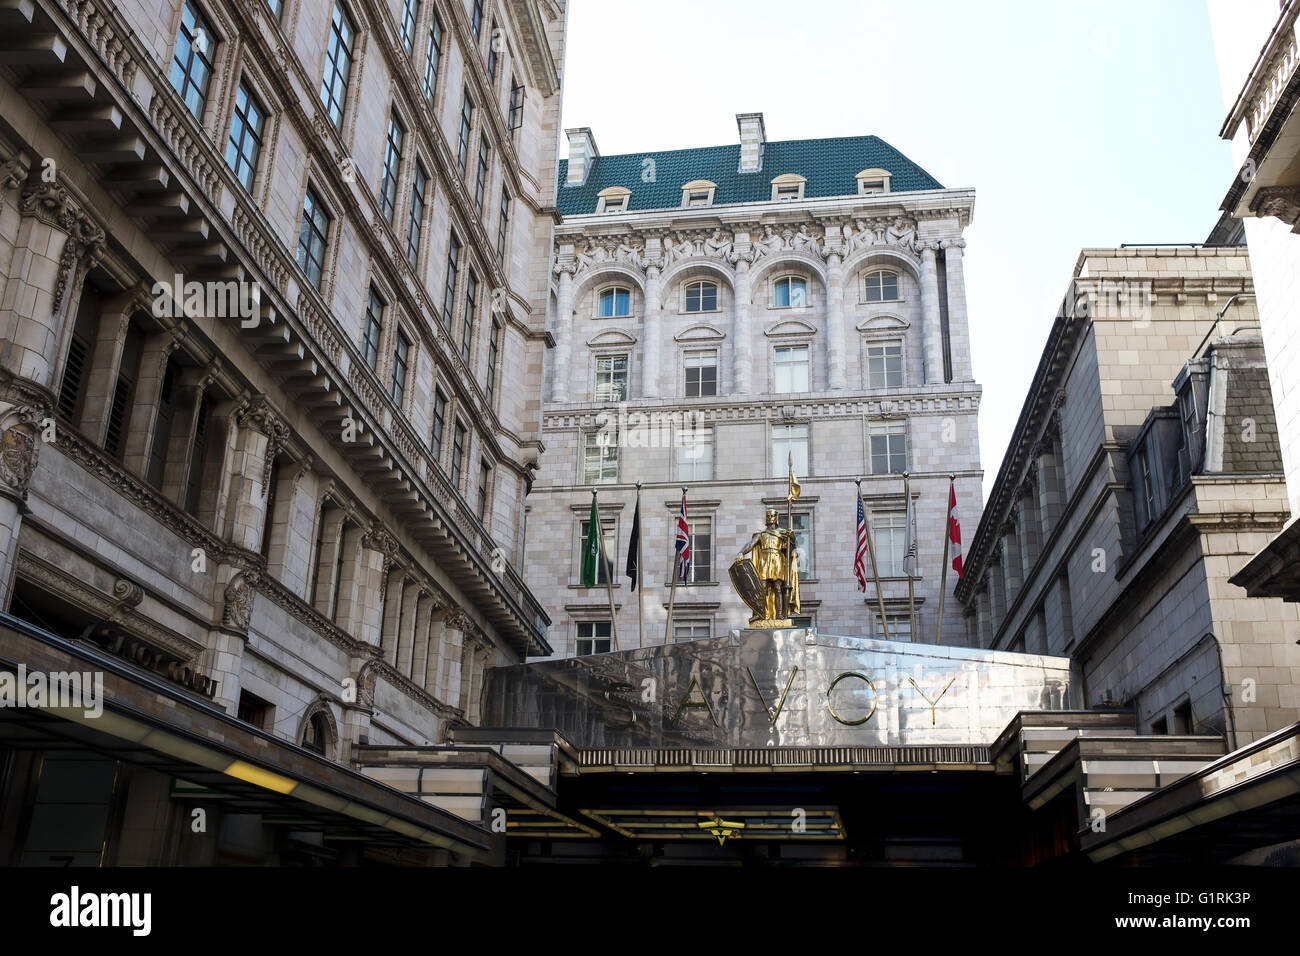 The metallic entrance canopy of the Savoy Hotel in London UK - Stock Image